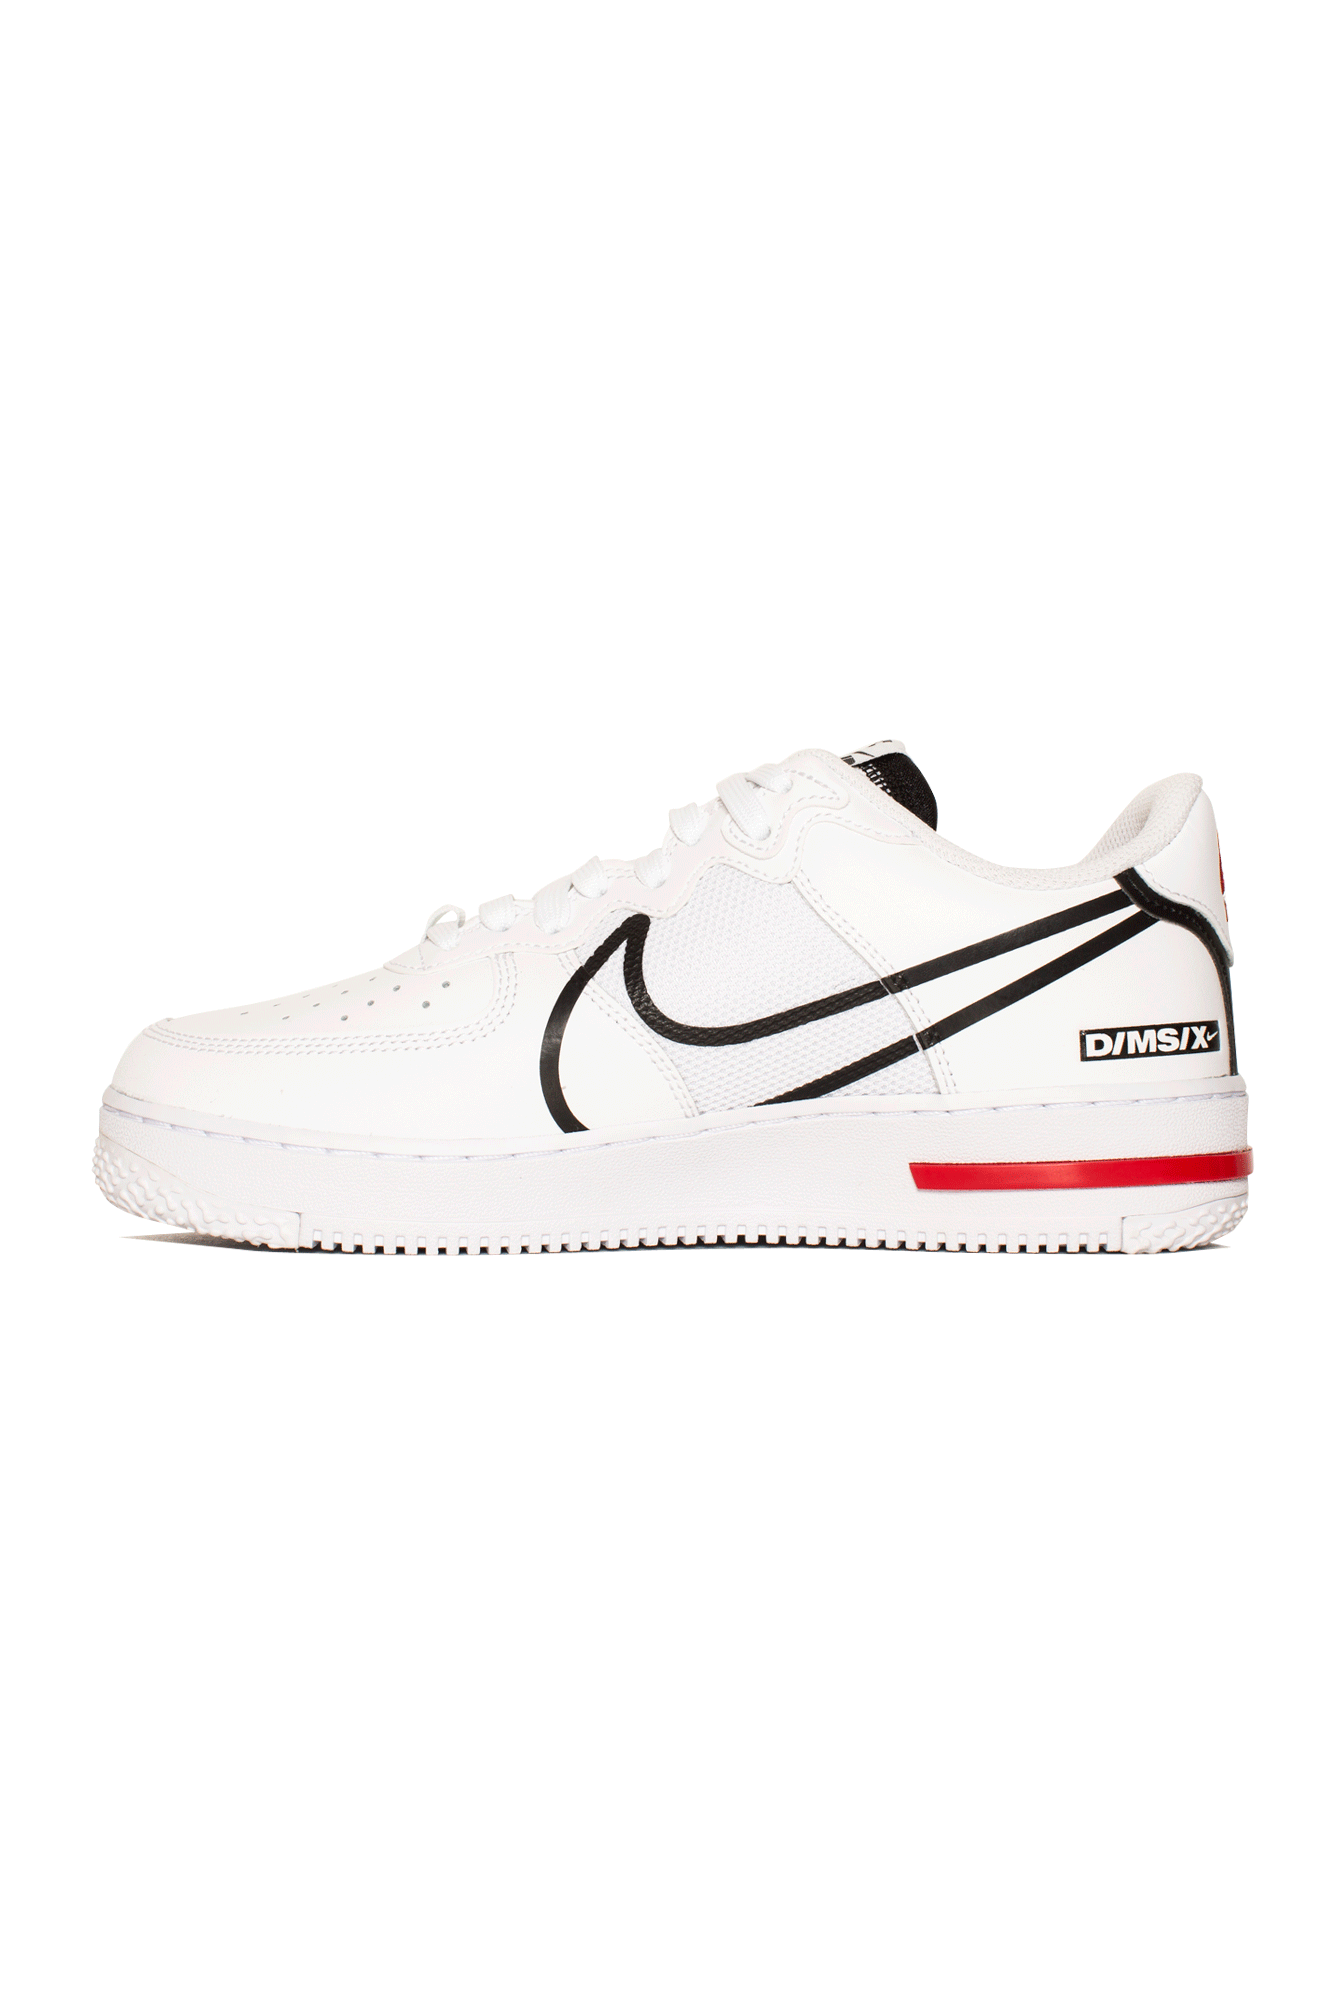 2002 Nike Air Force 1 Puerto Rico 3 Shoes Size 11.5 | eBay